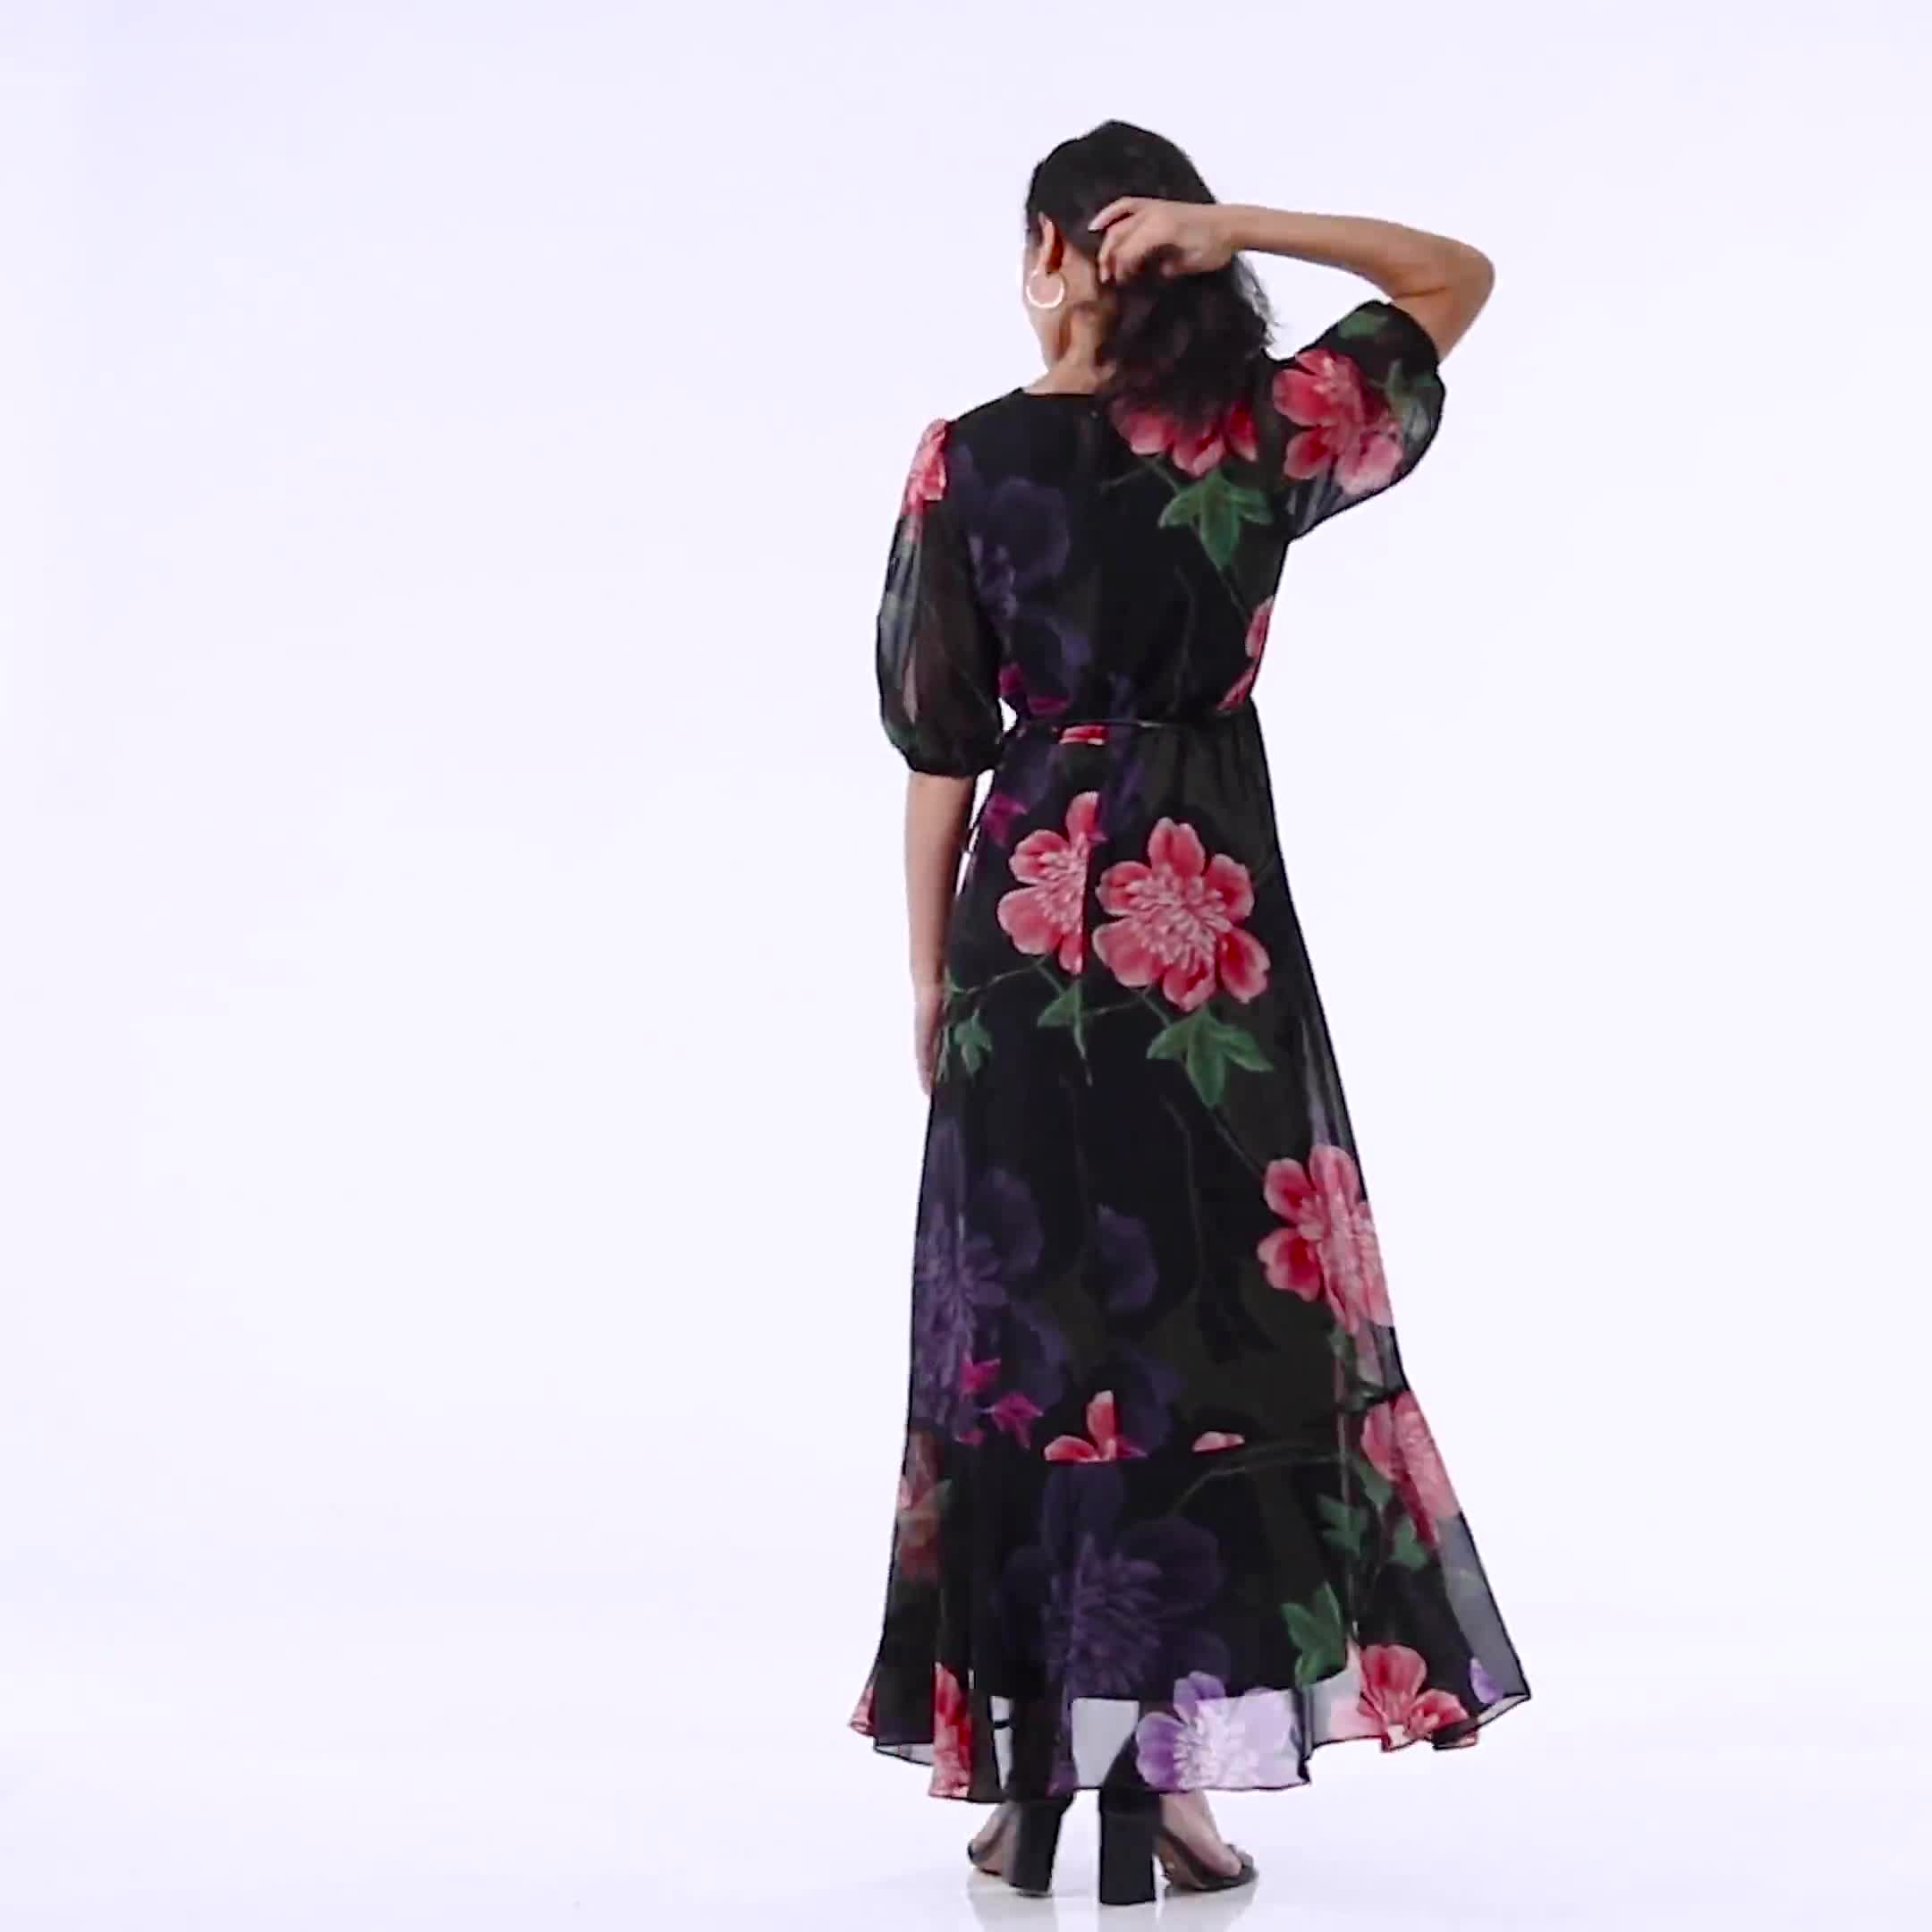 Large Floral Ruffle Dress - Video